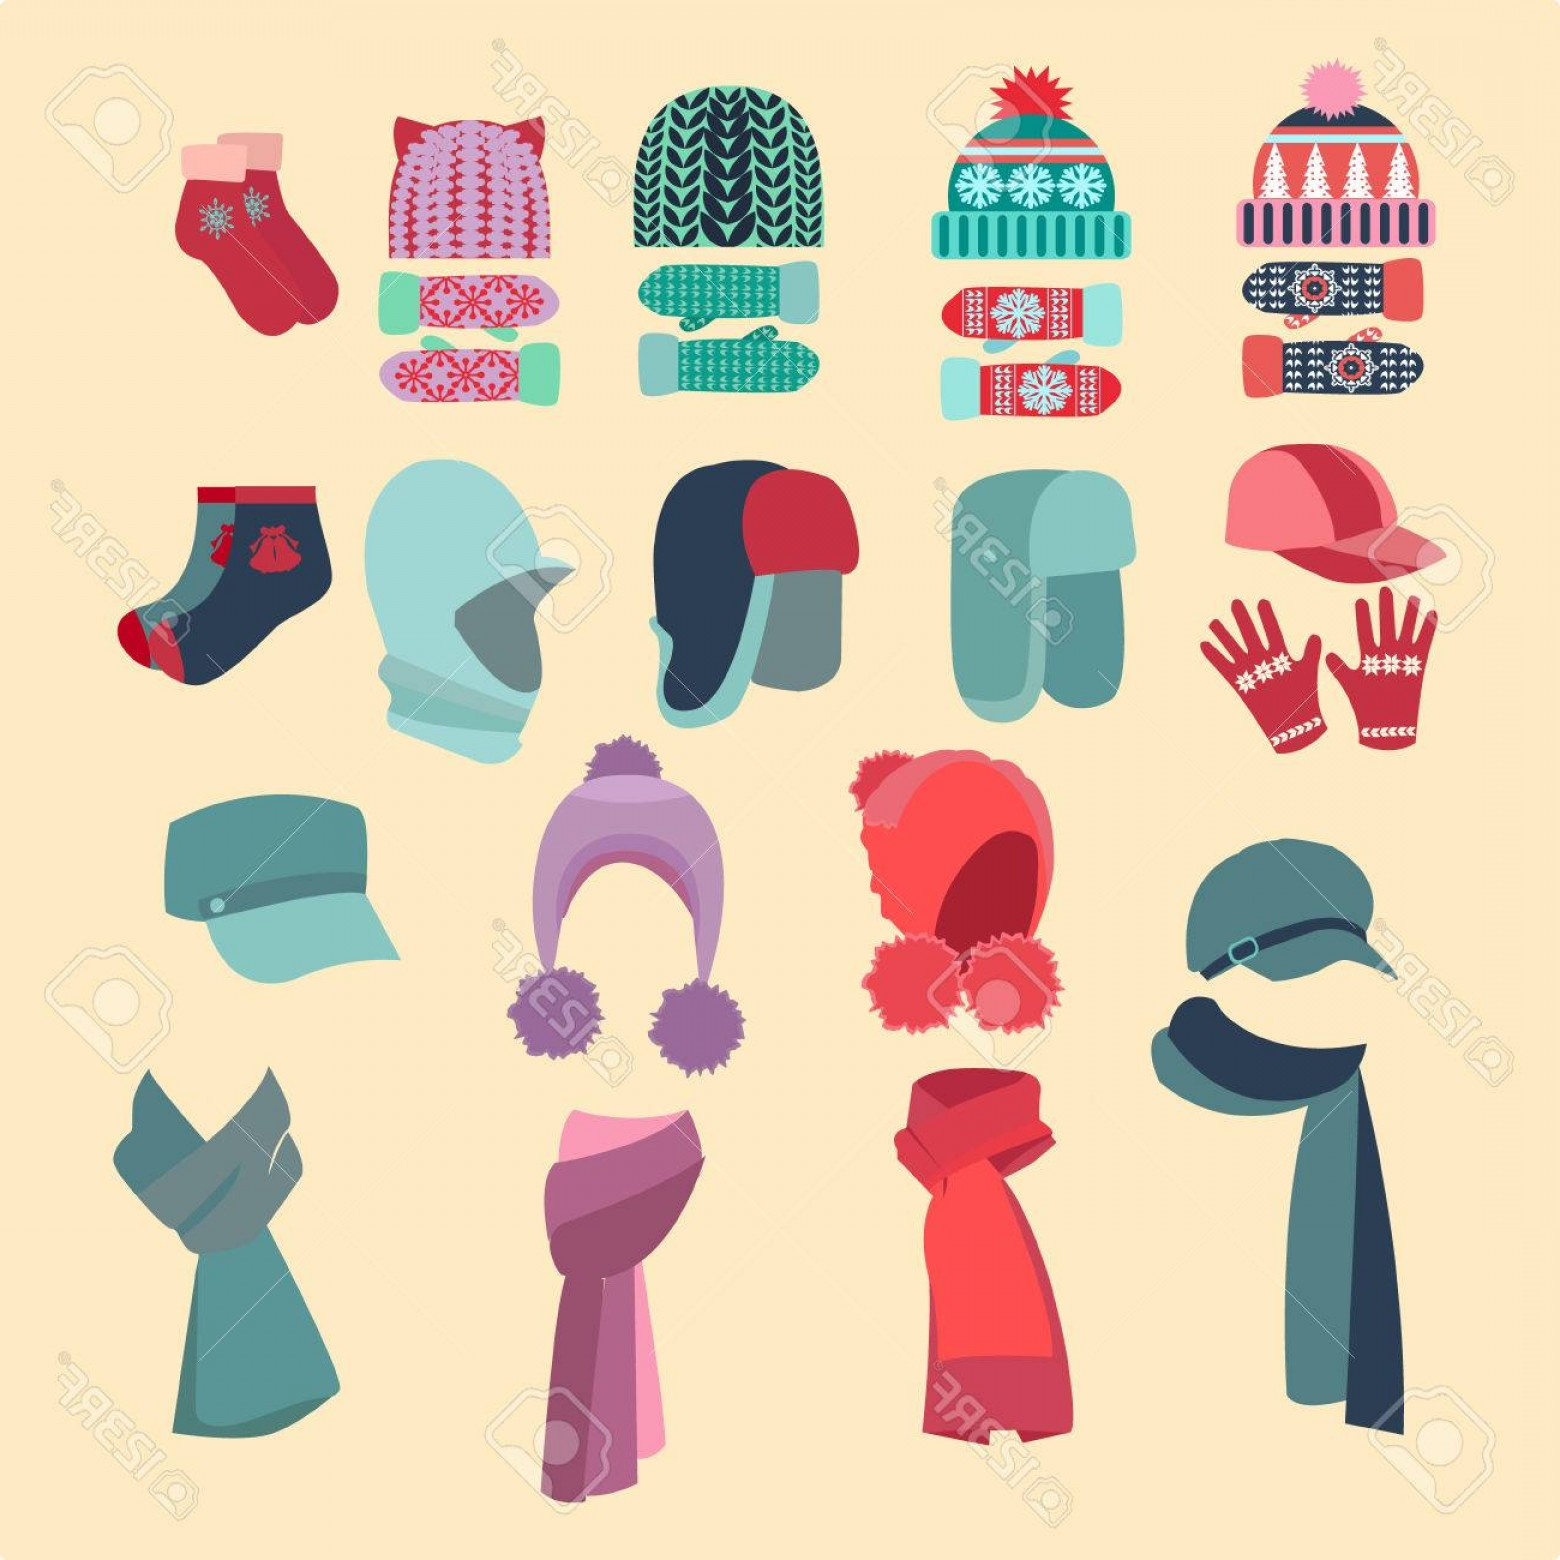 Stocking Hat Vector: Fancy Photostock Vector Set Vector Collection Of Knitted Woolen Hat And Mittens Winter Hat Scarves And Mittens Vector Illust